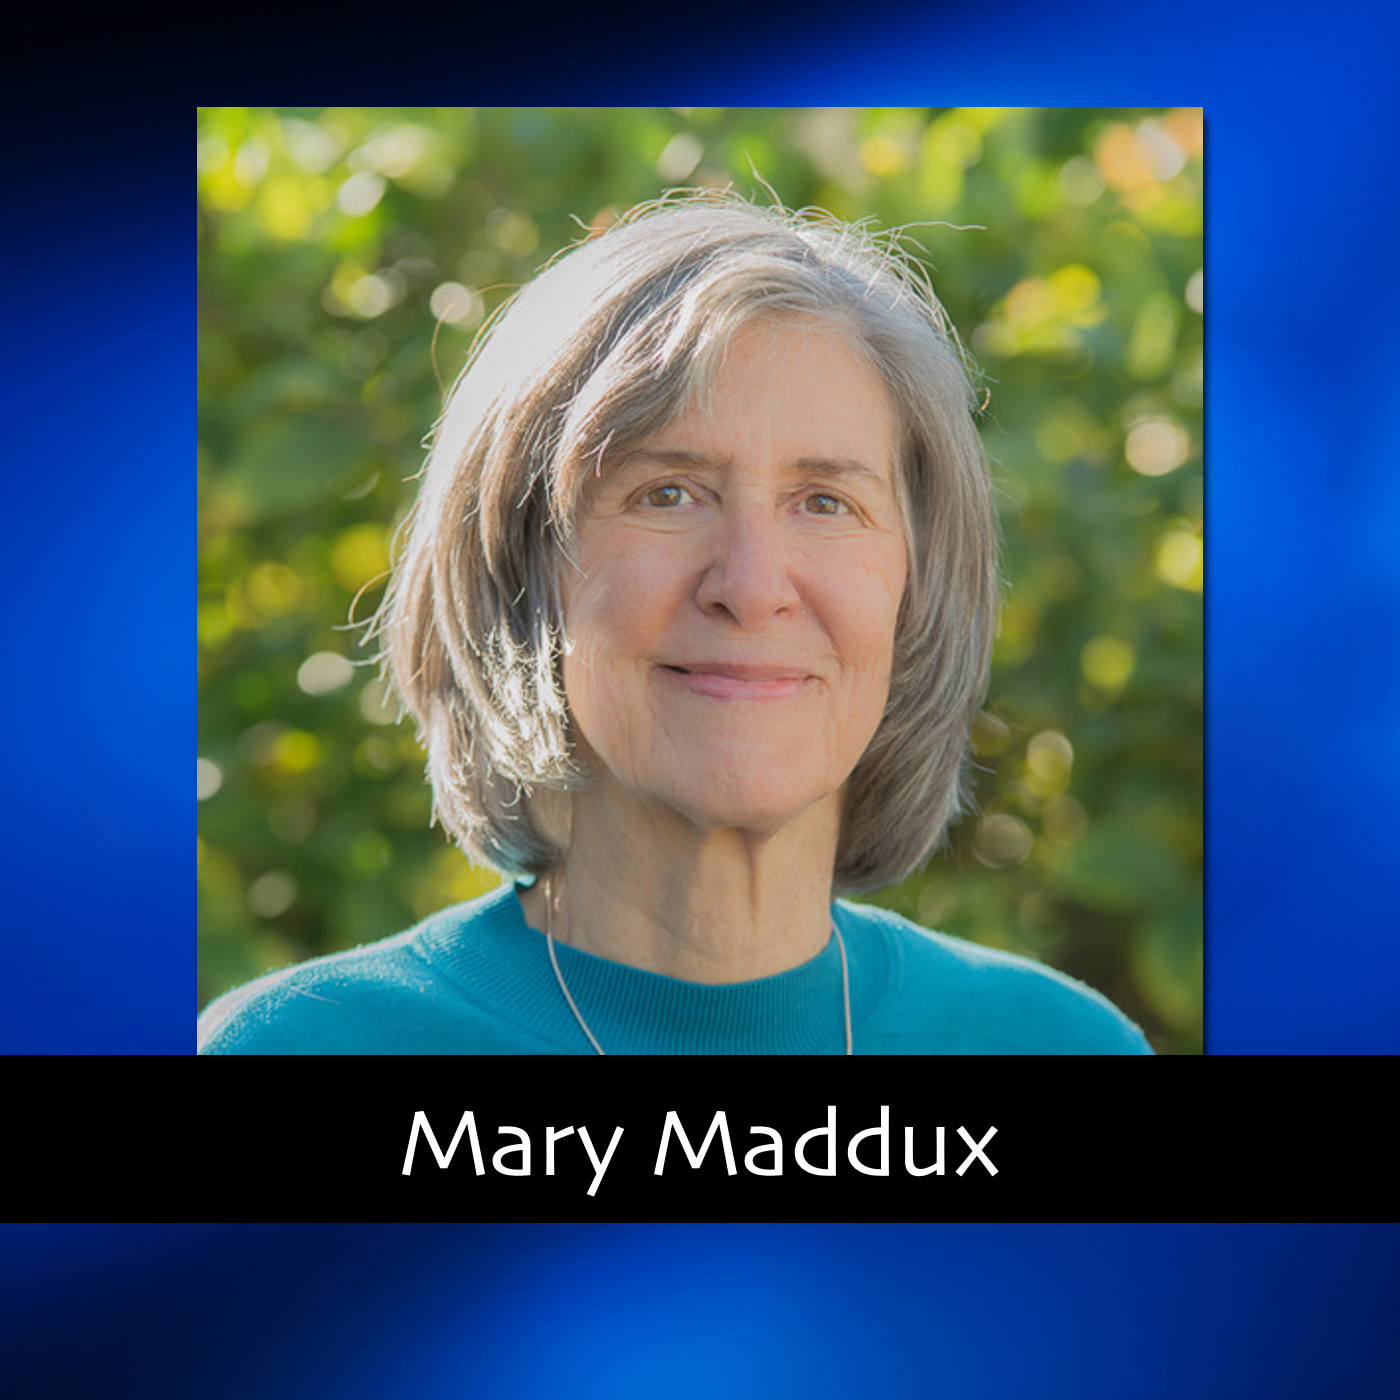 Mary Maddux thumb.jpg